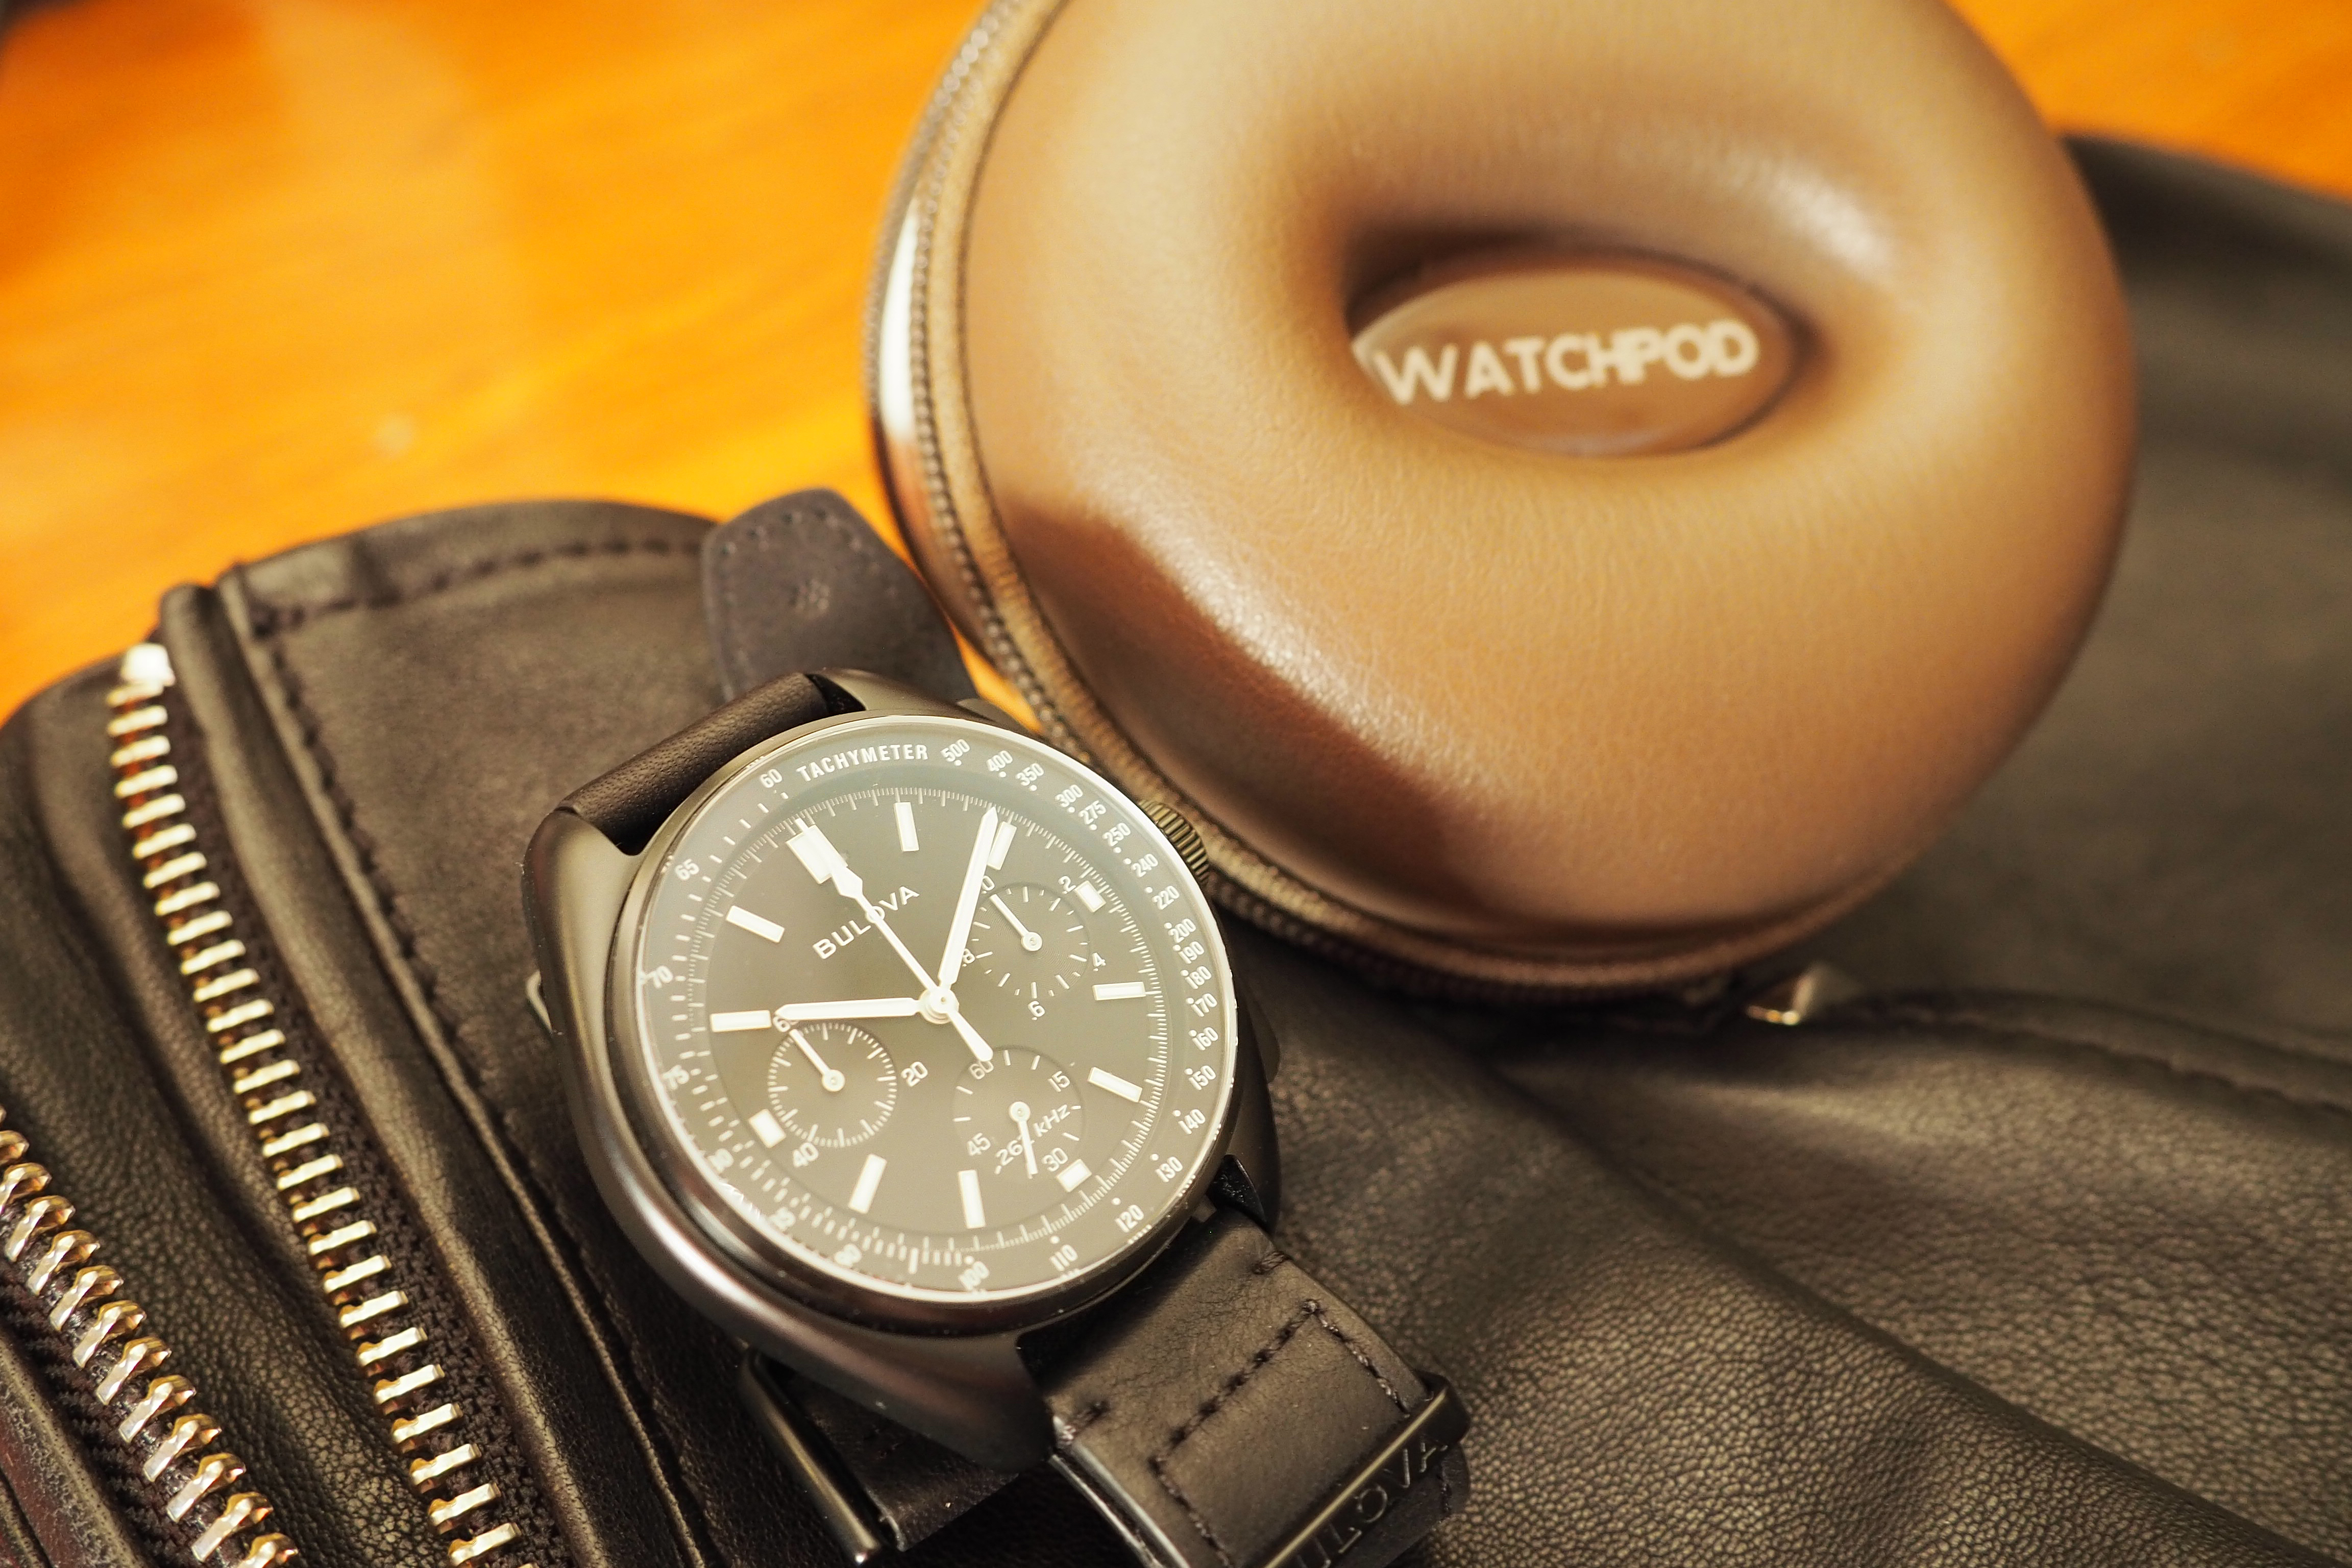 On leather jacket with WatchPod